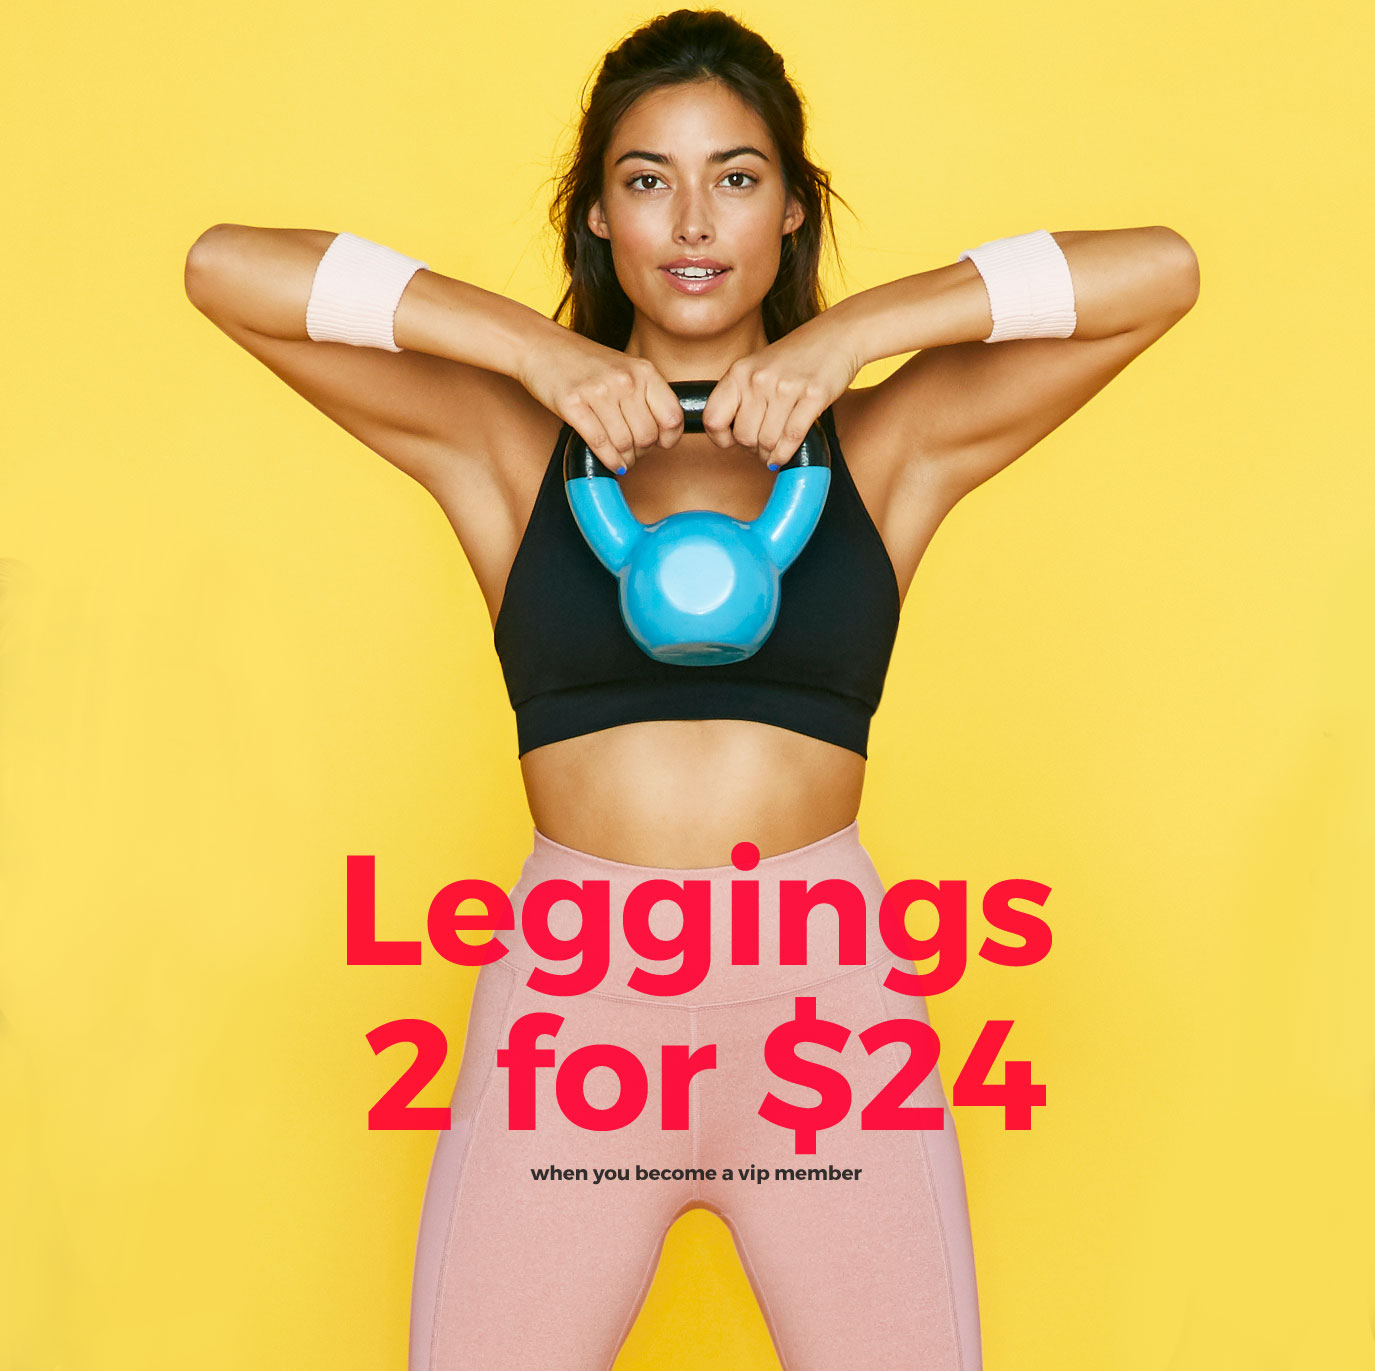 2 Leggings for $24 When You Become A VIP Member